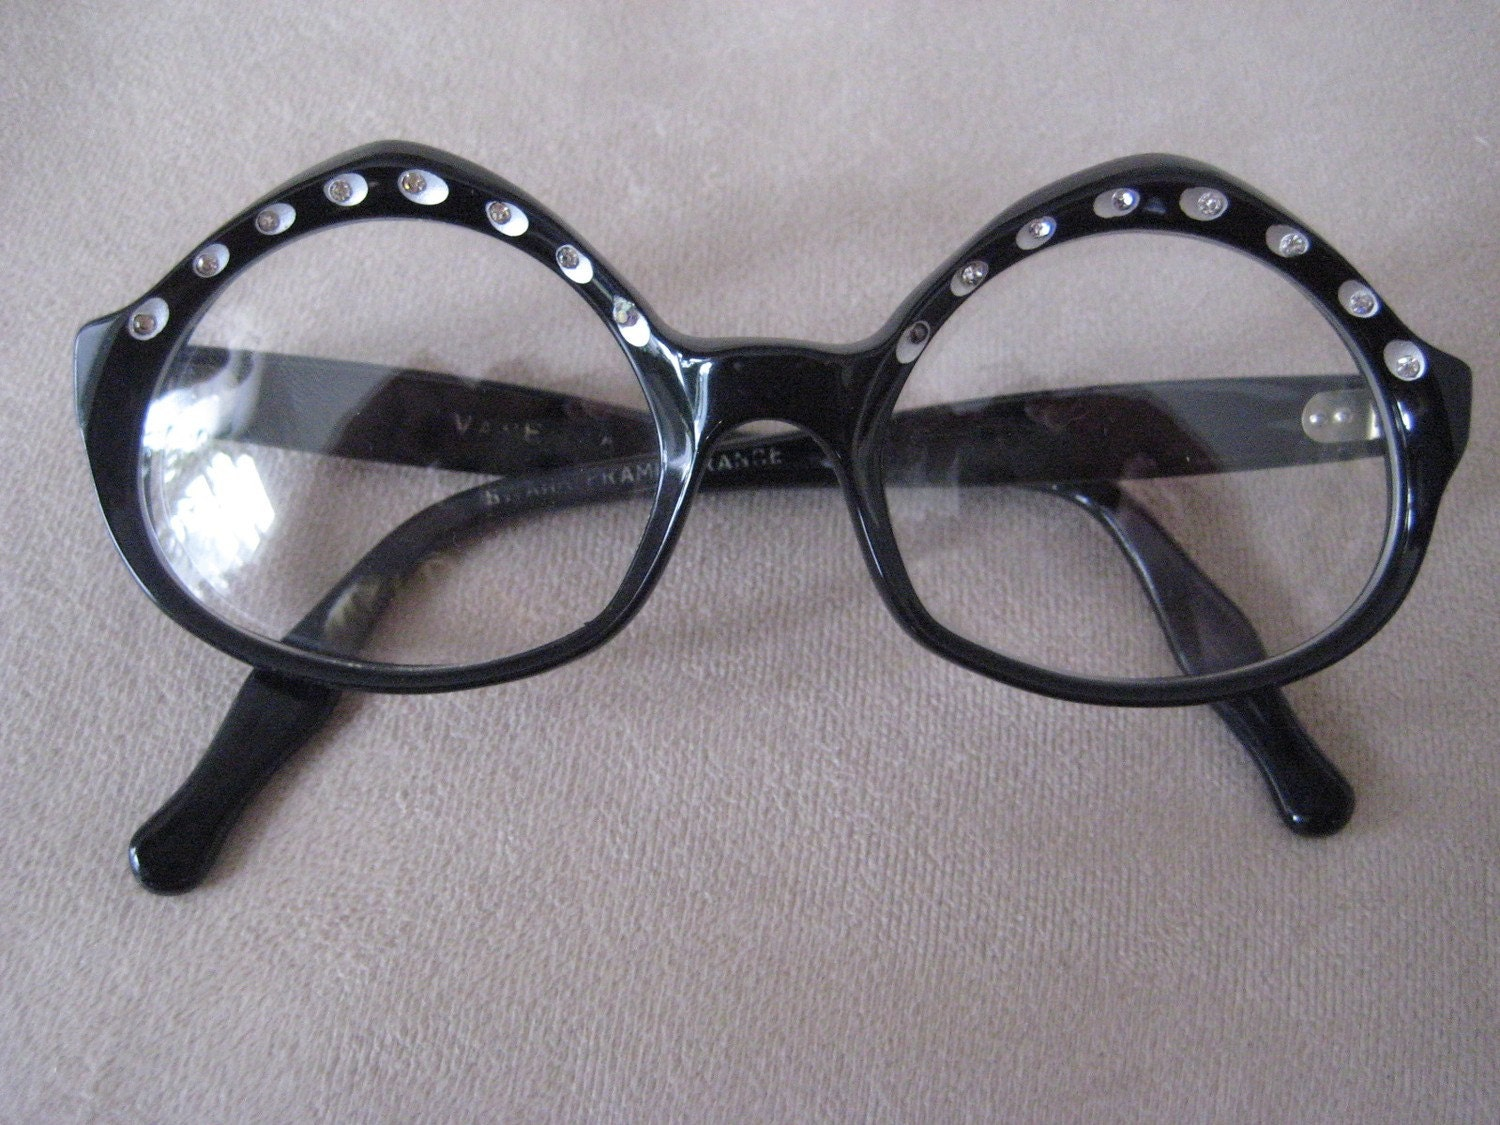 Quirky Eyeglass Frames : Swank unique eyeglasses or sunglasses frames black by atrickey